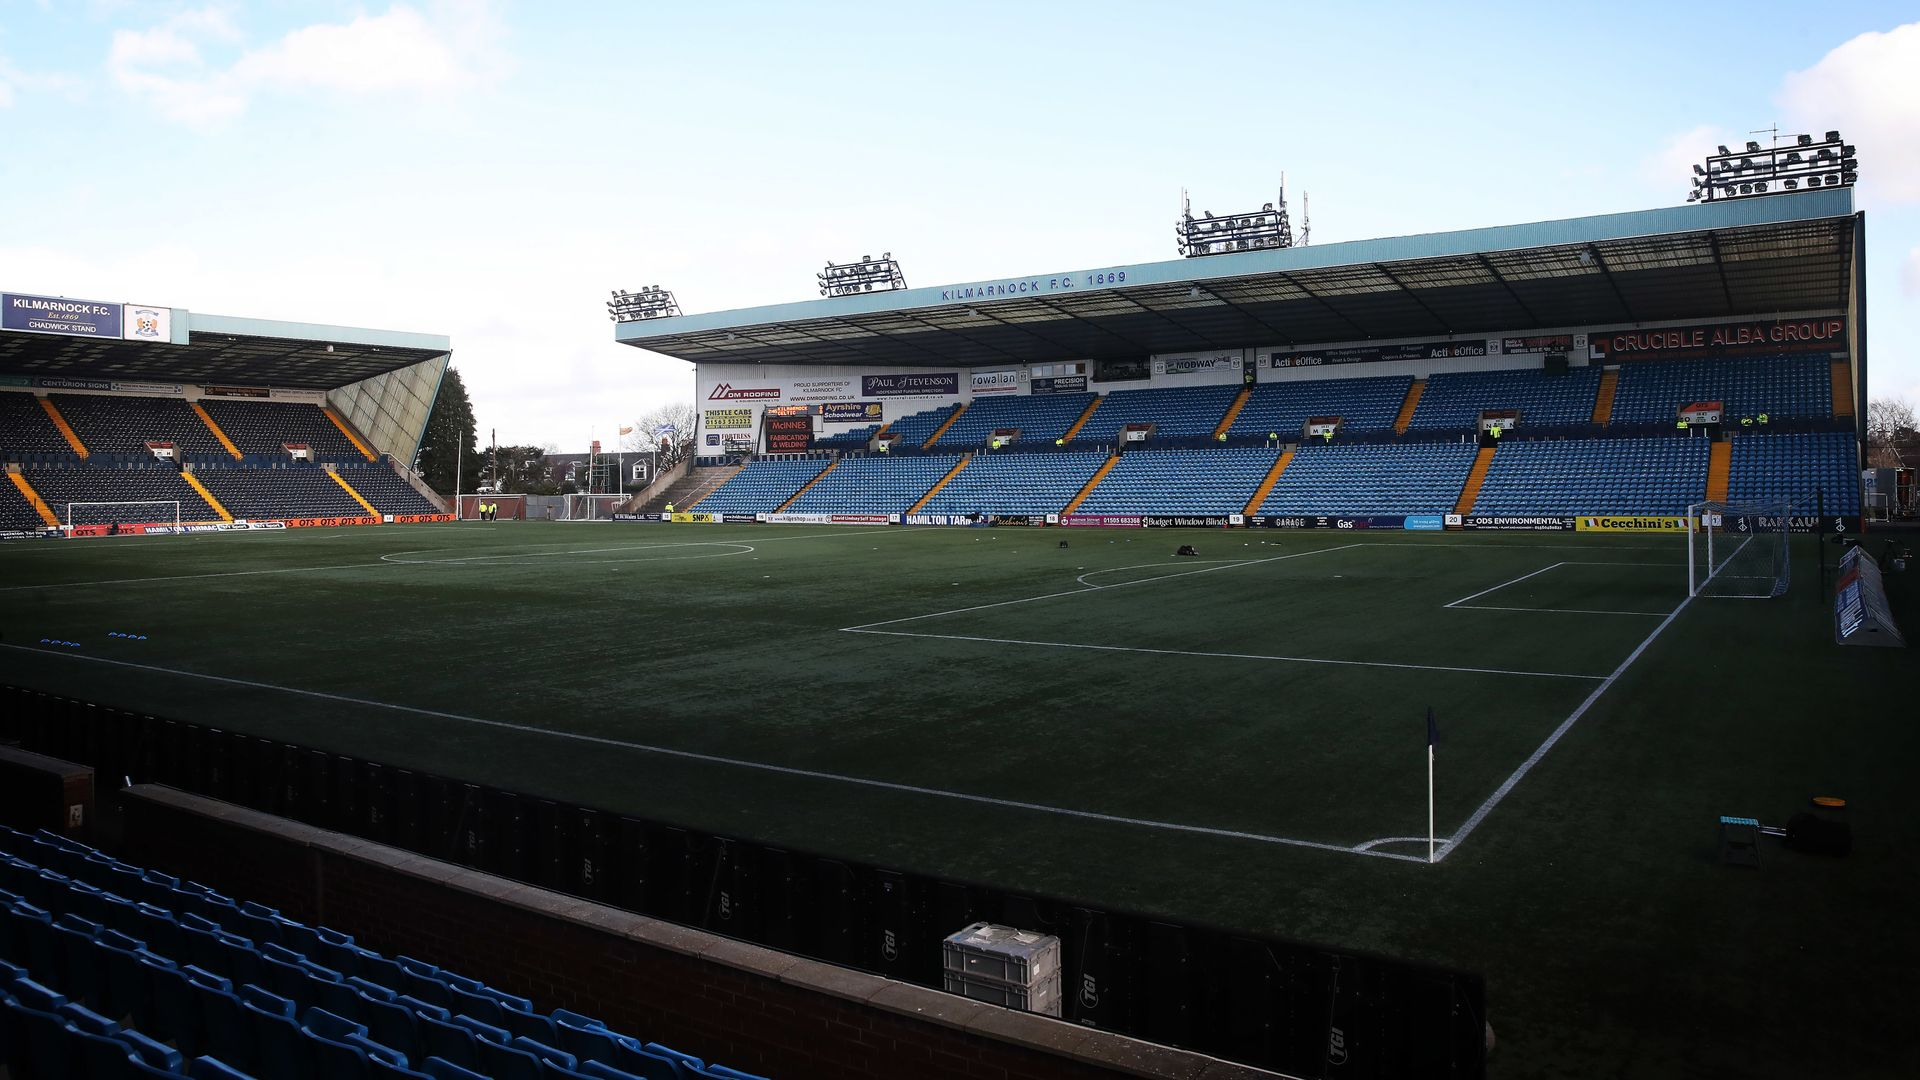 Kilmarnock squad advised to self-isolate for 14 days